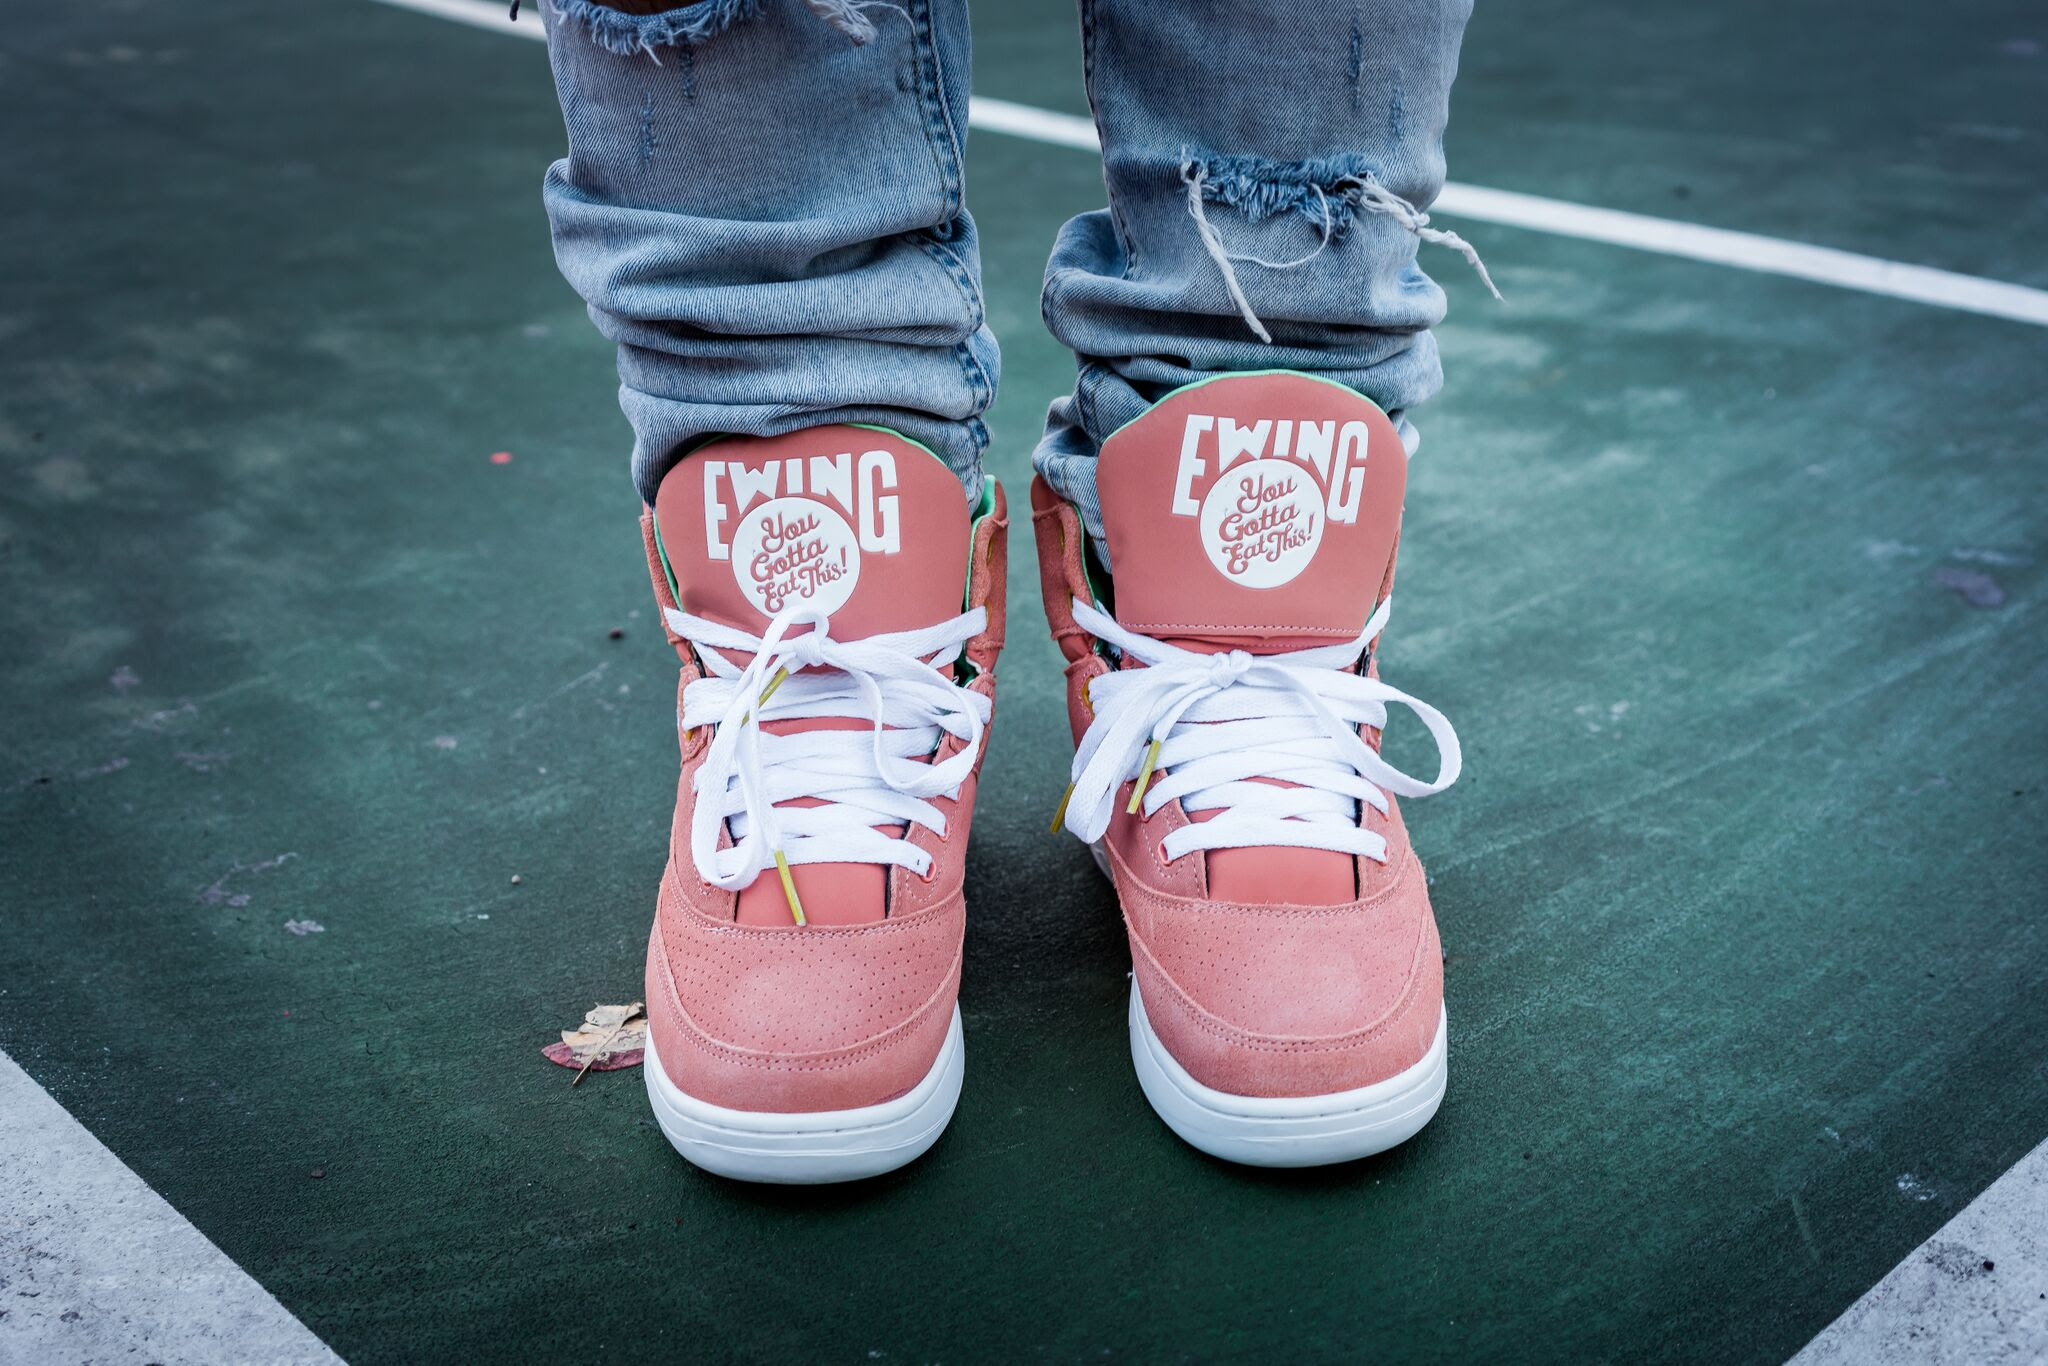 ewing yougottaeatthis 1